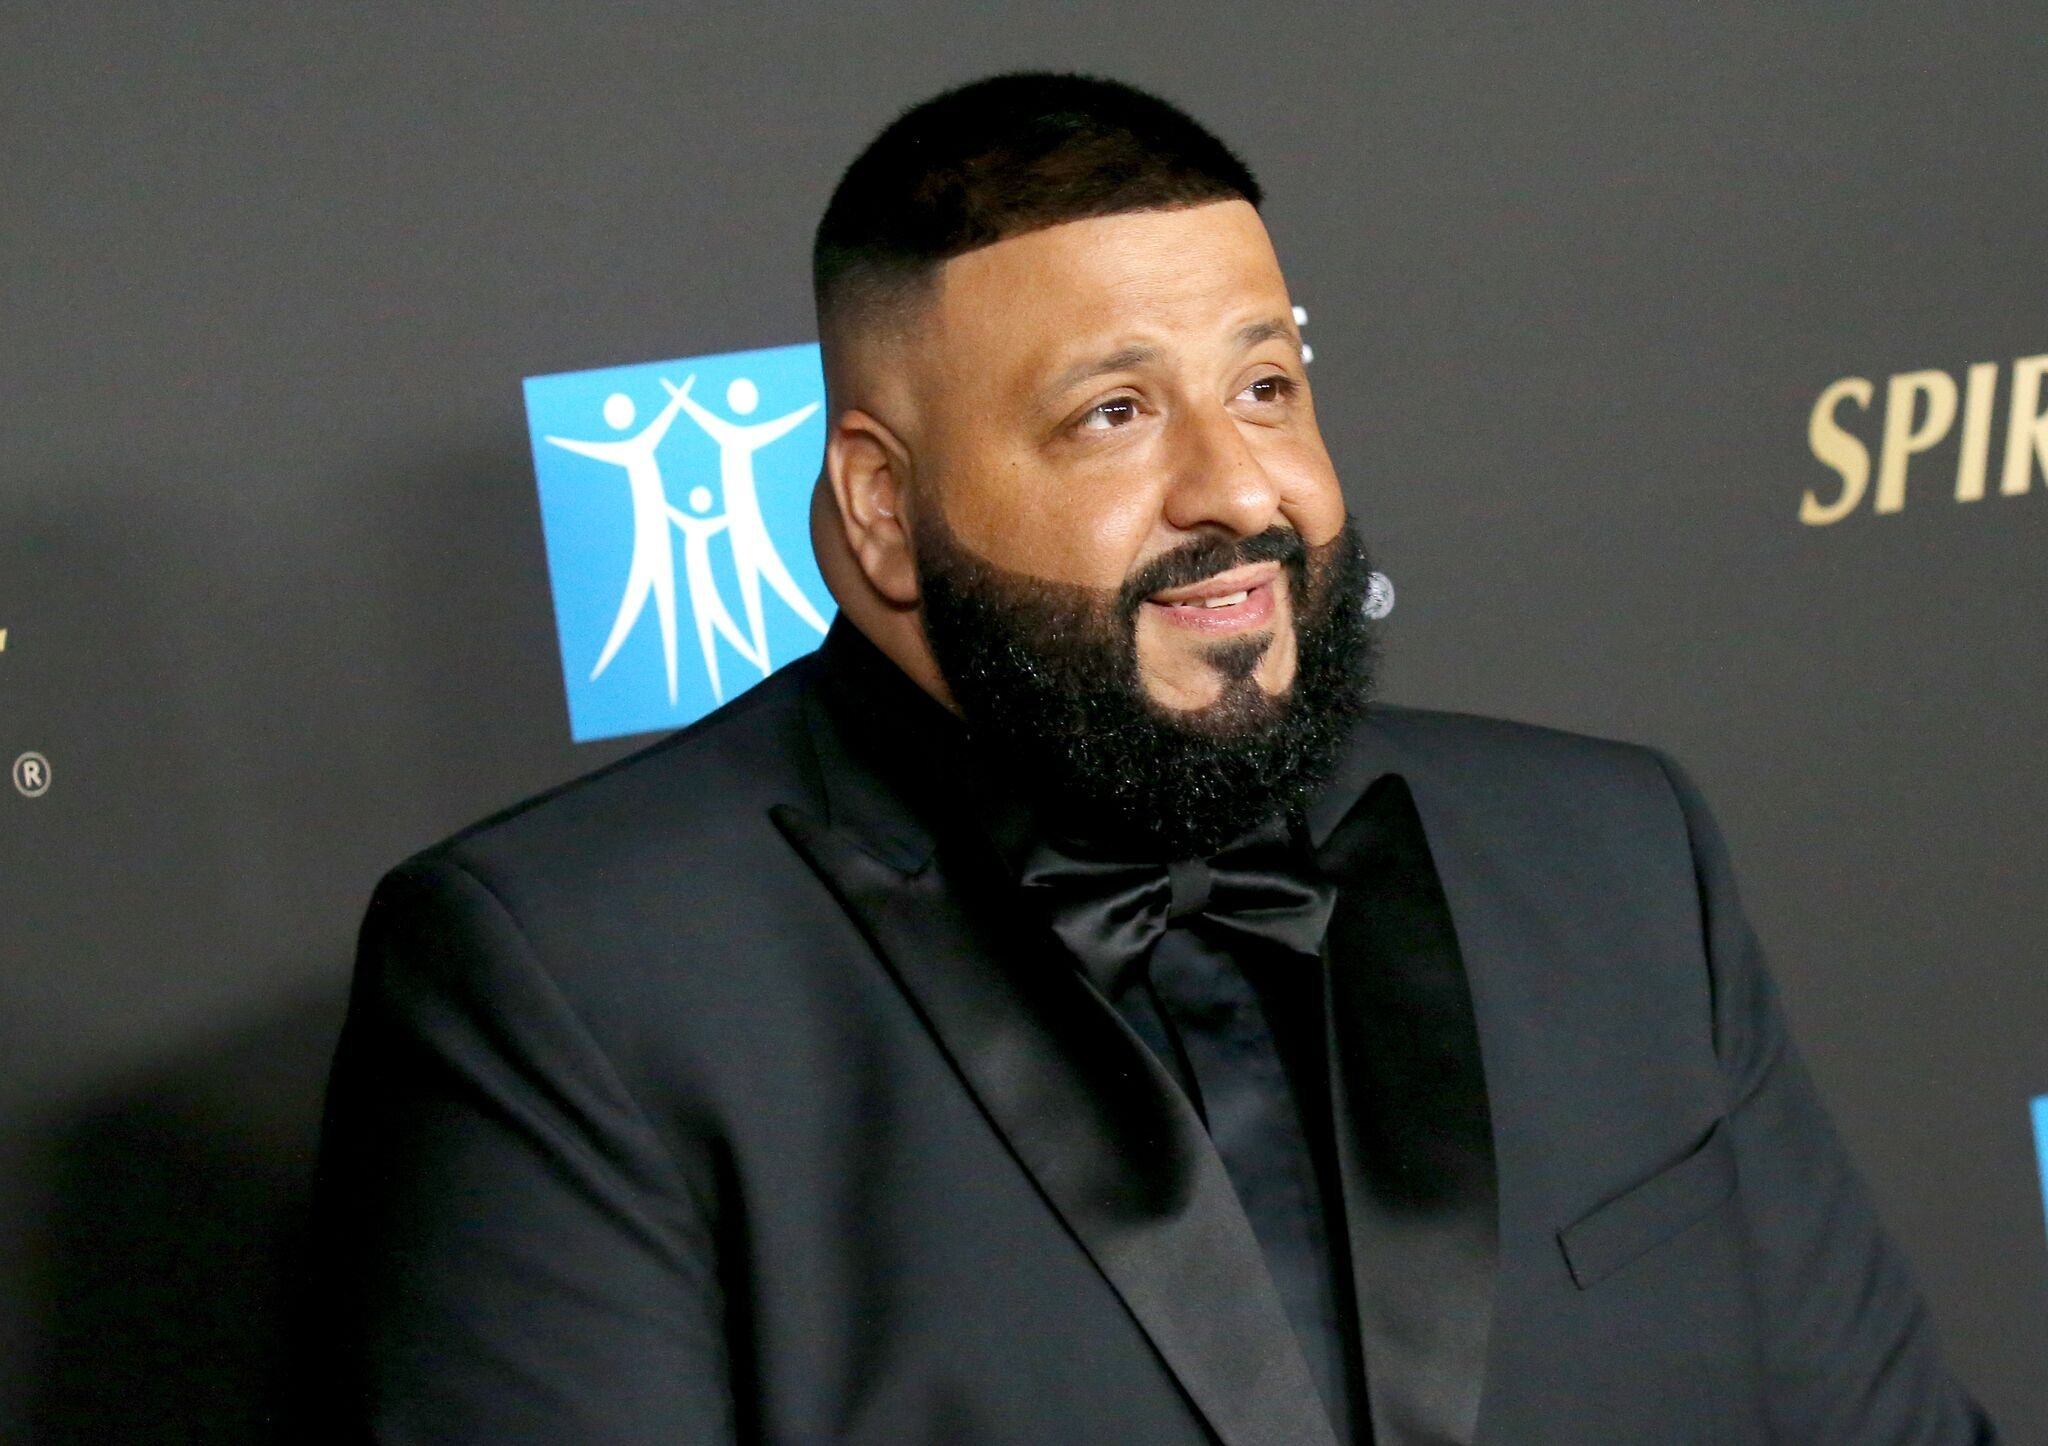 DJ Khaled attends the City Of Hope's Spirit of Life 2019 Gala held at The Barker Hanger on October 10, 2019 | Photo: Getty Images